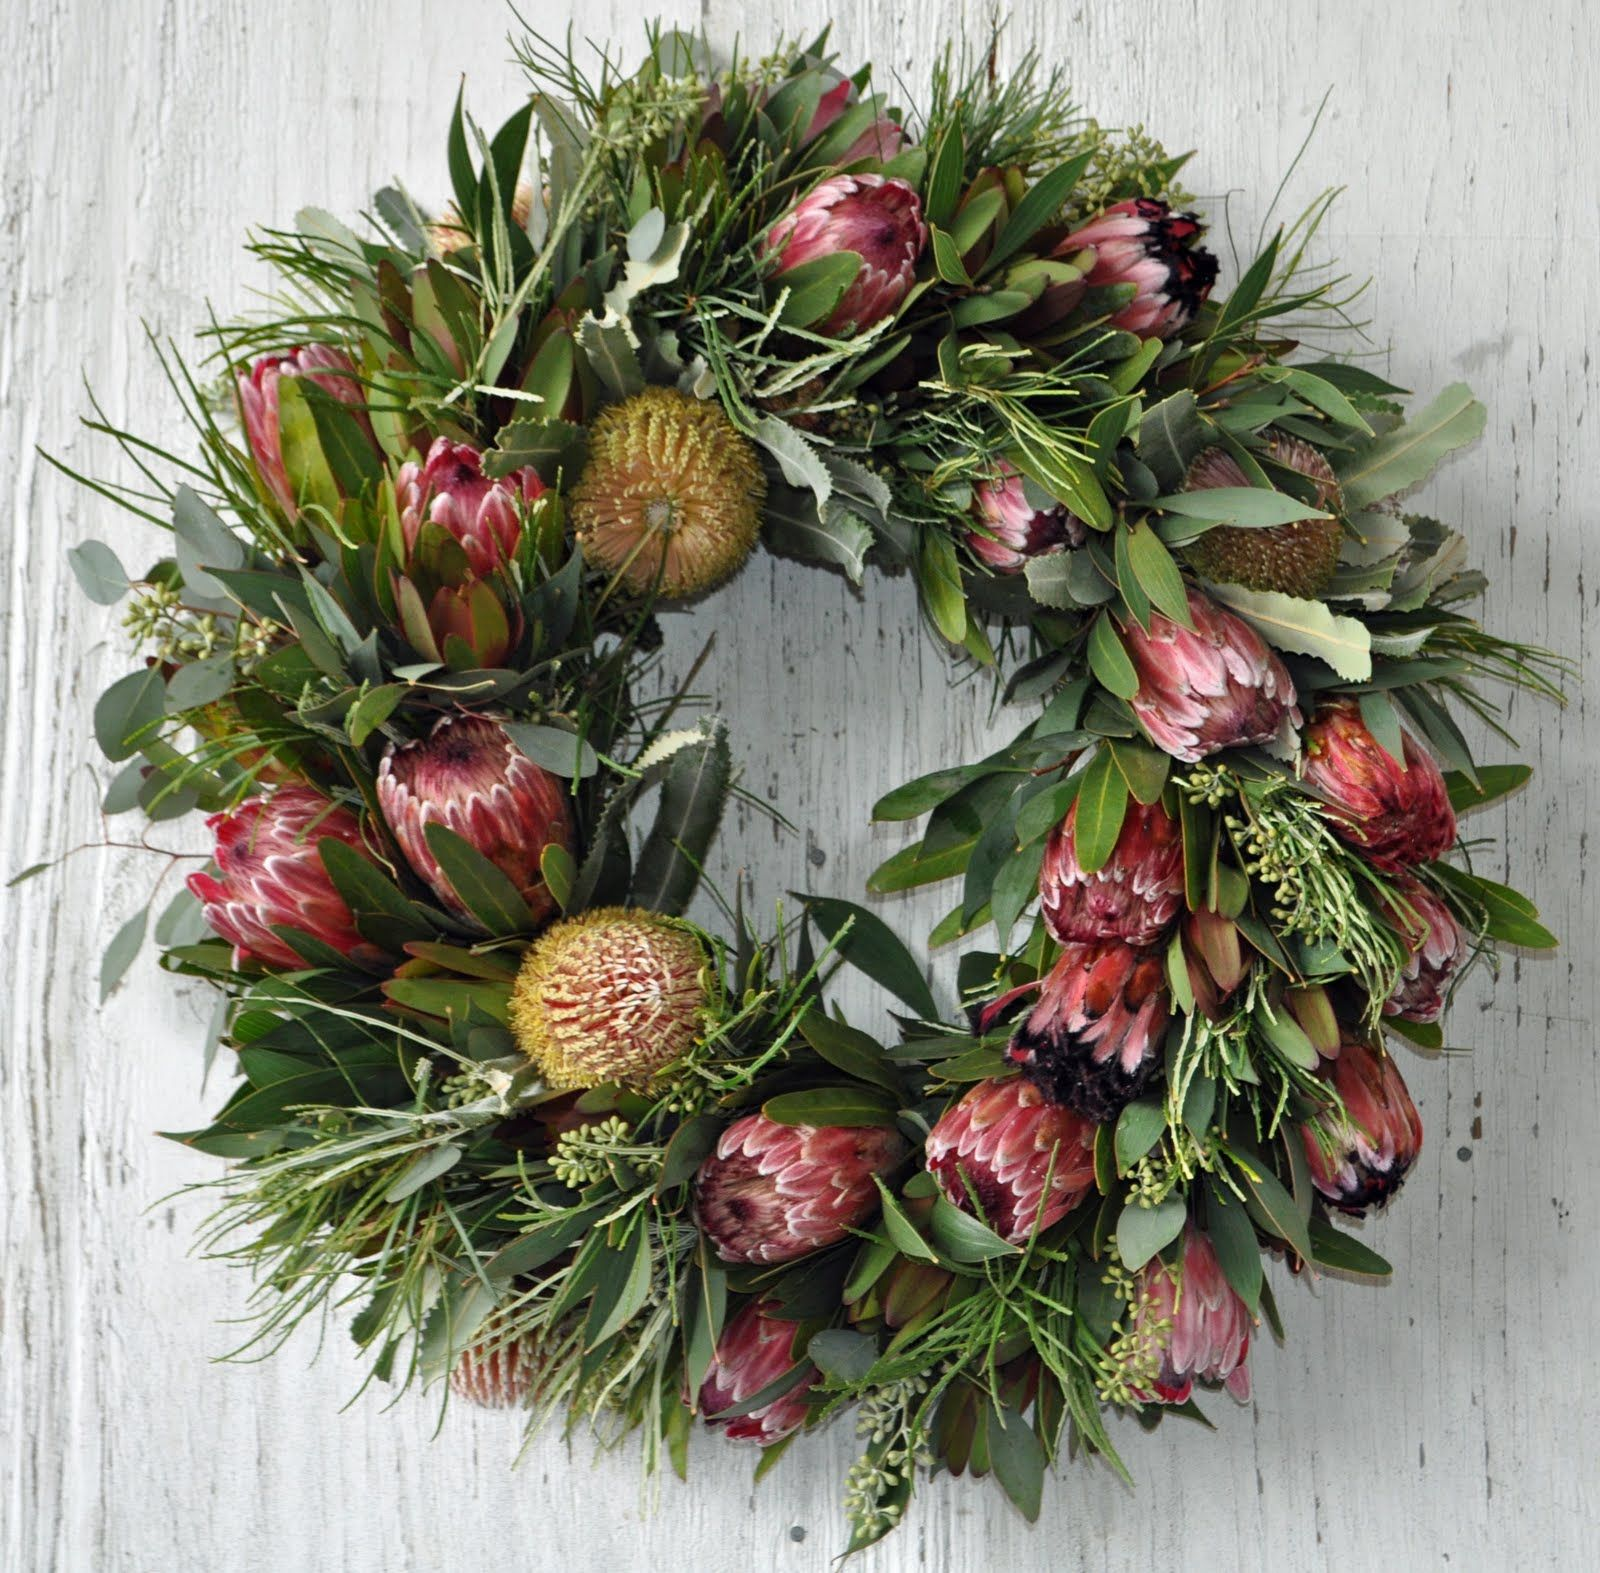 Australian Native Shade Plants: A Wreath Made From Beautiful Native Australian Flowers